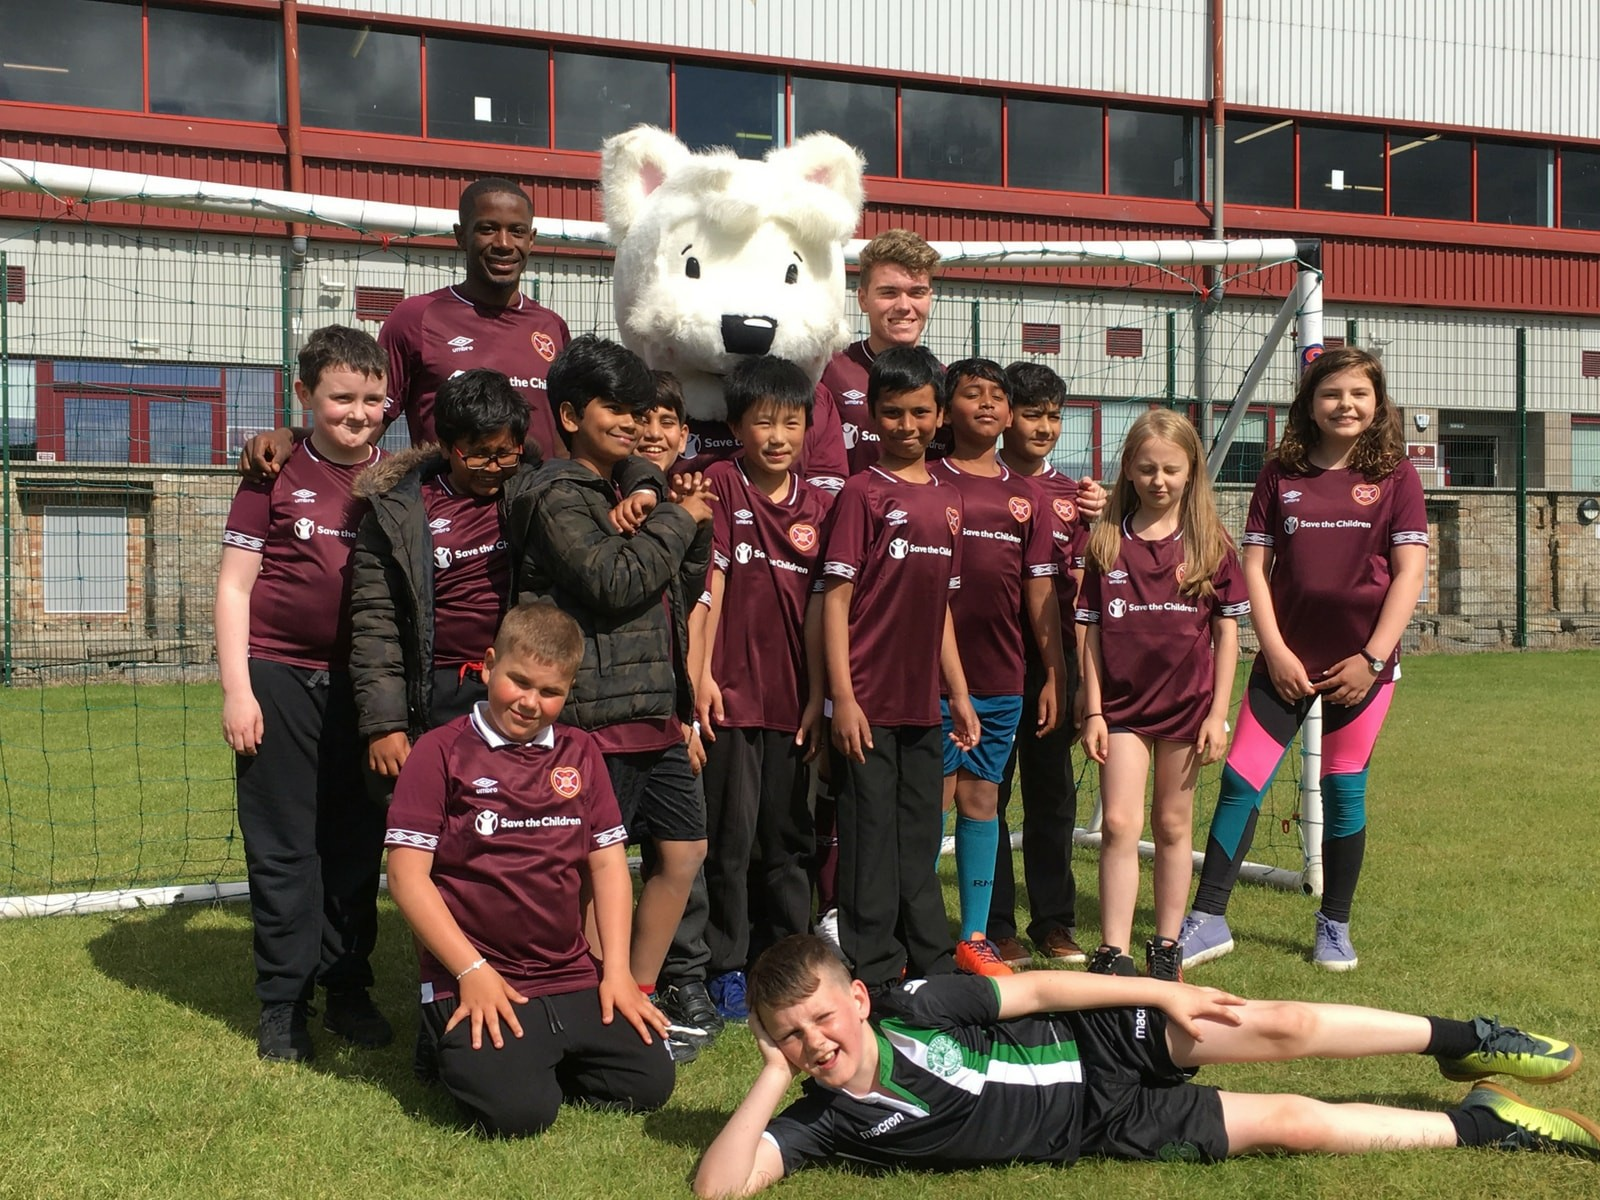 » T.E.A.M Project – Amazing surprise for the launch of Hearts' new kit!